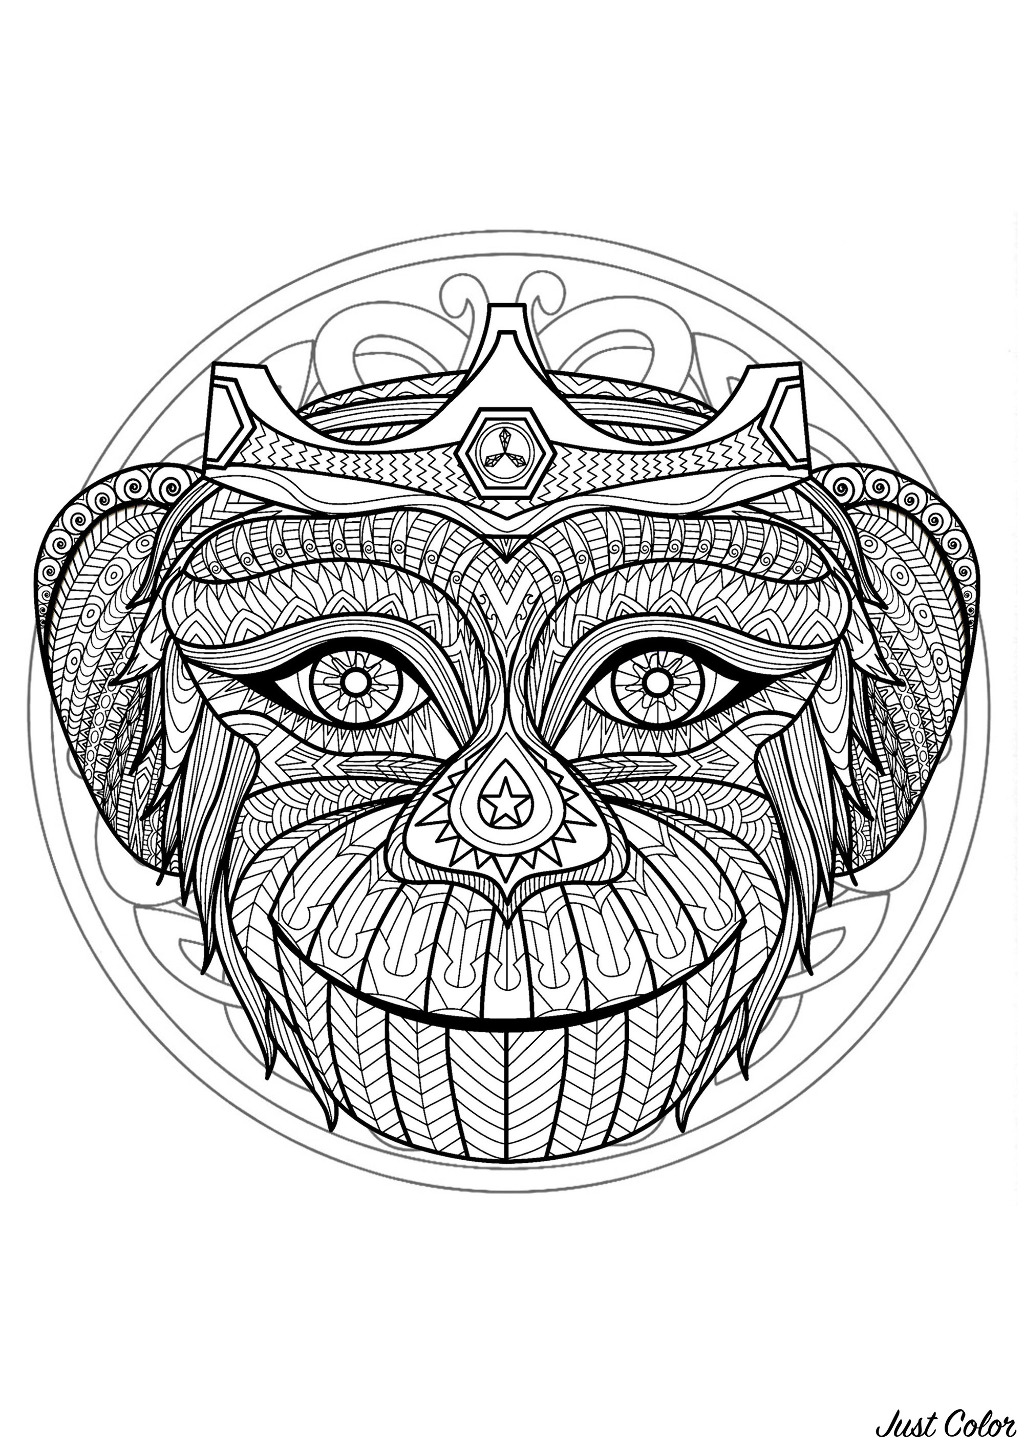 Mandala With Gorgeous Monkey Head And Geometric Patterns